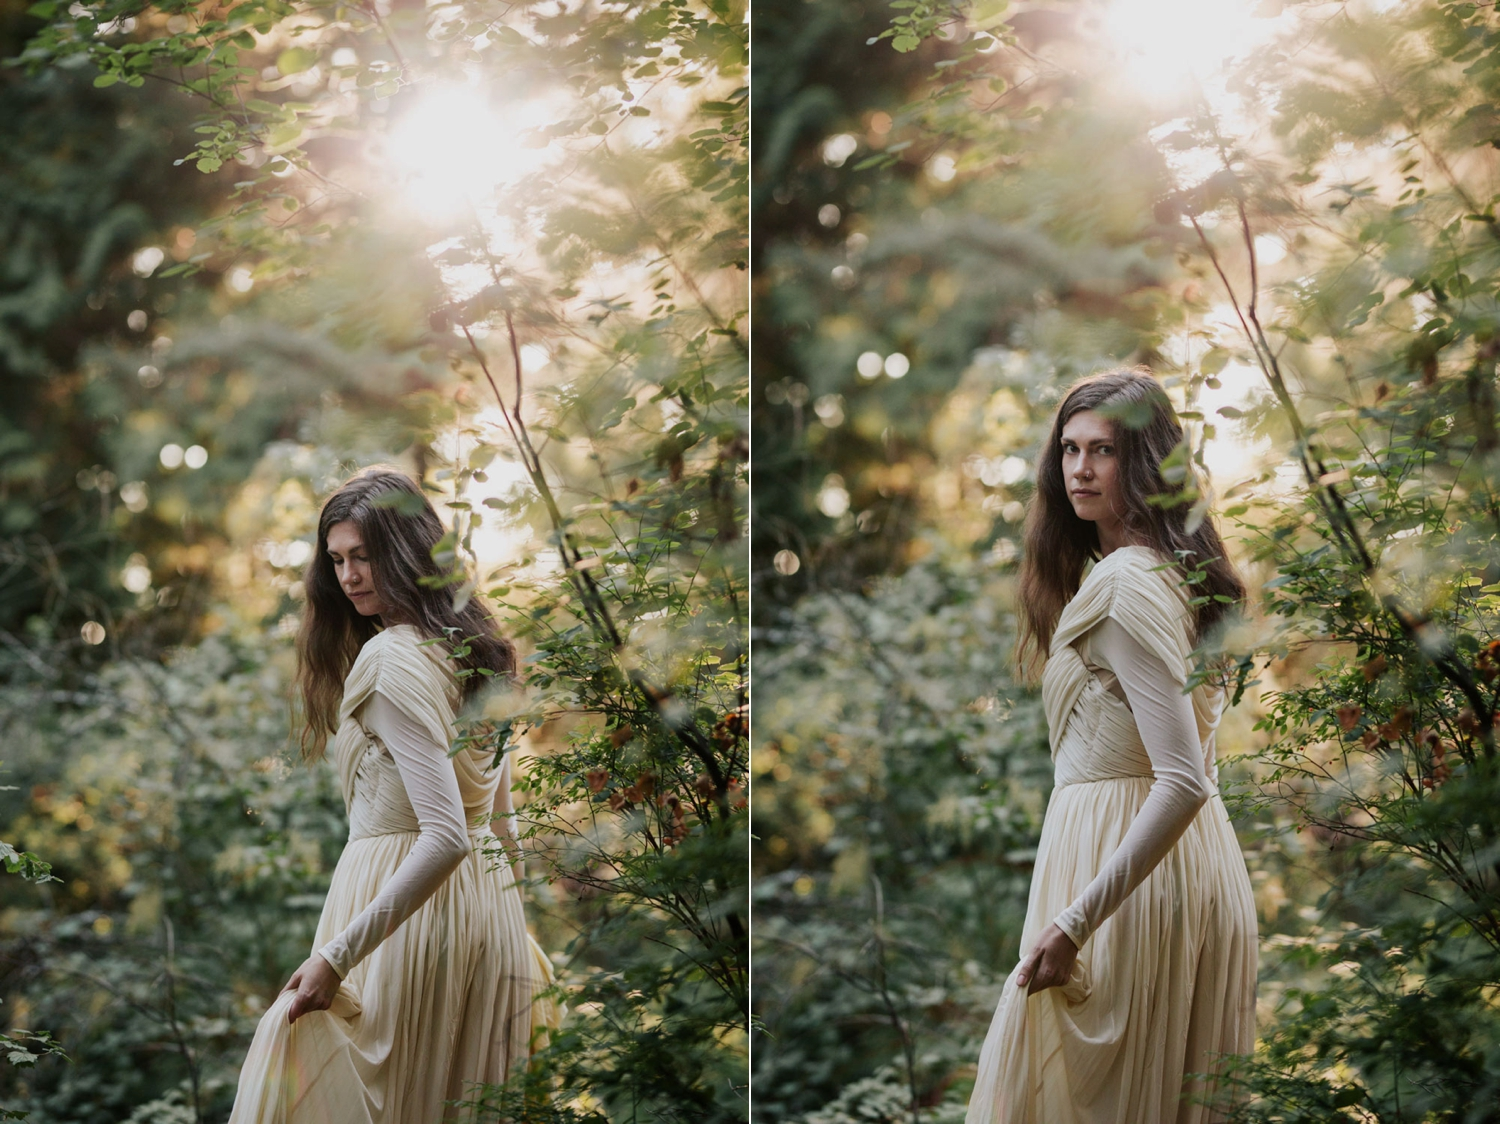 Golden Sunlight Shines Through Forest Trees Onto Boho Vancouver Island Bride Wearing Long Sleeve Dress